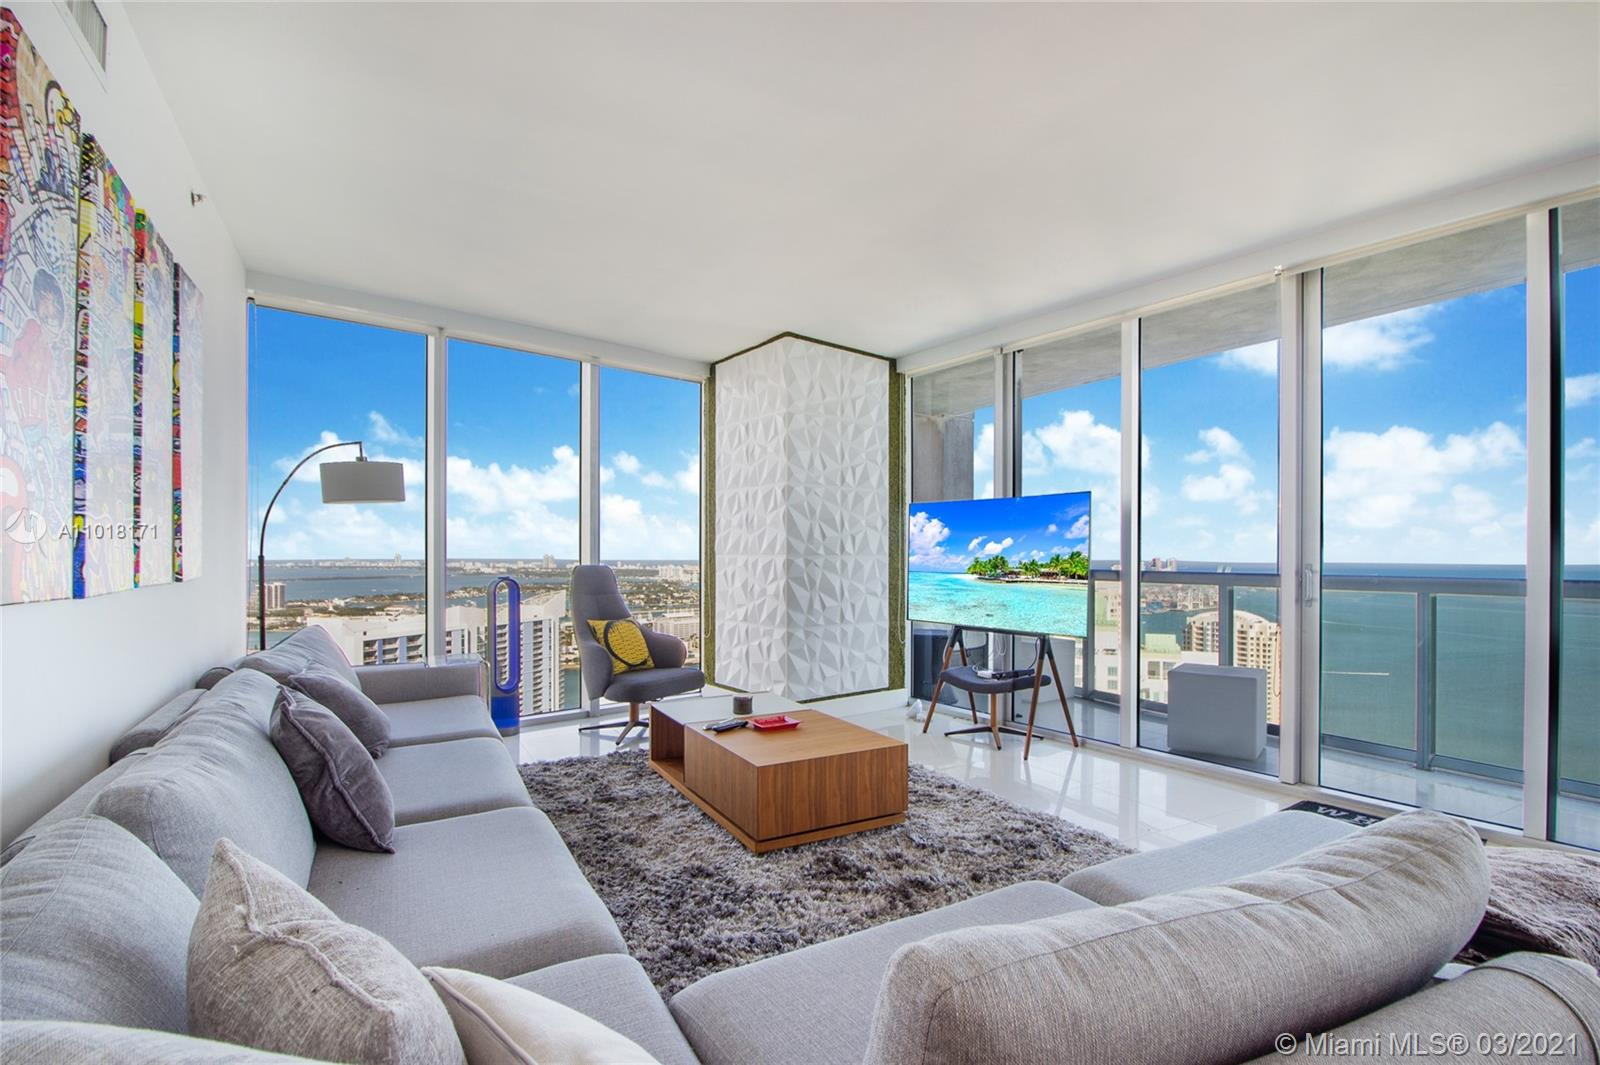 VIEWS FOR DAYS! This 3 bedroom 2.5 bath corner unit is located in the prestigious tower 1 at ICON Brickell. Features include spectacular views of the Biscayne Bay, The Ocean, Downtown Miami, & the Miami River from the 51st floor. The interior has porcelain flooring throughout, LED lighting, SubZero & Wolfe appliances, huge balcony, floor to ceiling glass. Pet-friendly for both owners & renters. Tower 1 is loaded with amenities including an Olympic-length pool overlooking Biscayne Bay, an outdoor fireplace, an exceptional spa, & a lushly landscaped outdoor living room, Icon Brickell lives up to its name. Includes 1 assigned parking space an option to lease a second valet spot.